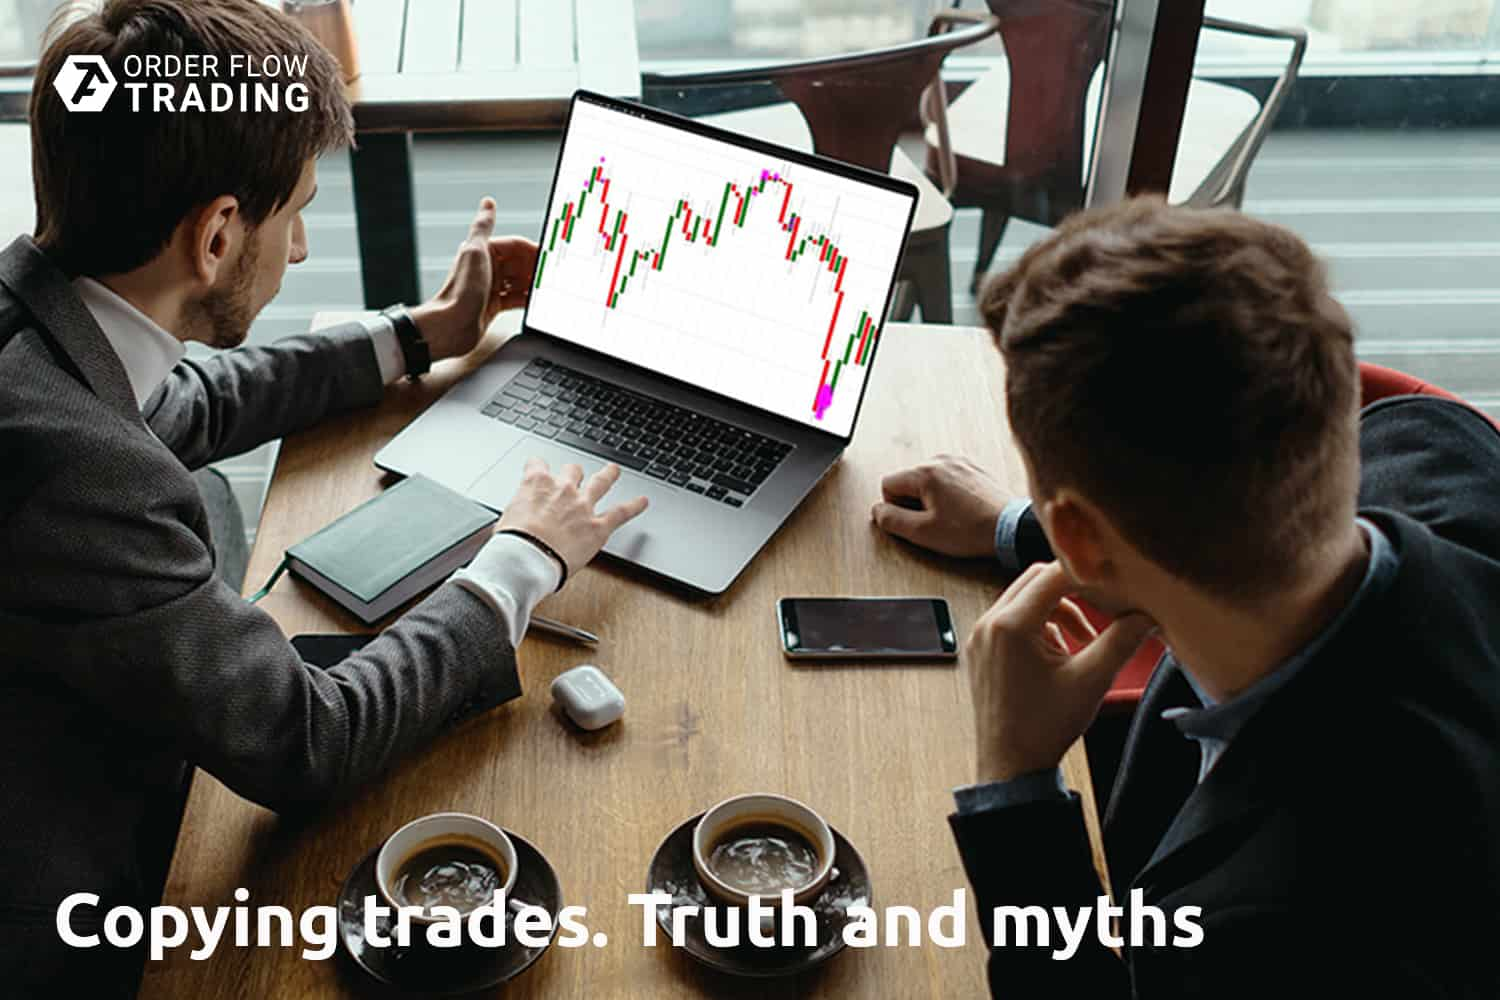 Copying trades. Truth and myths